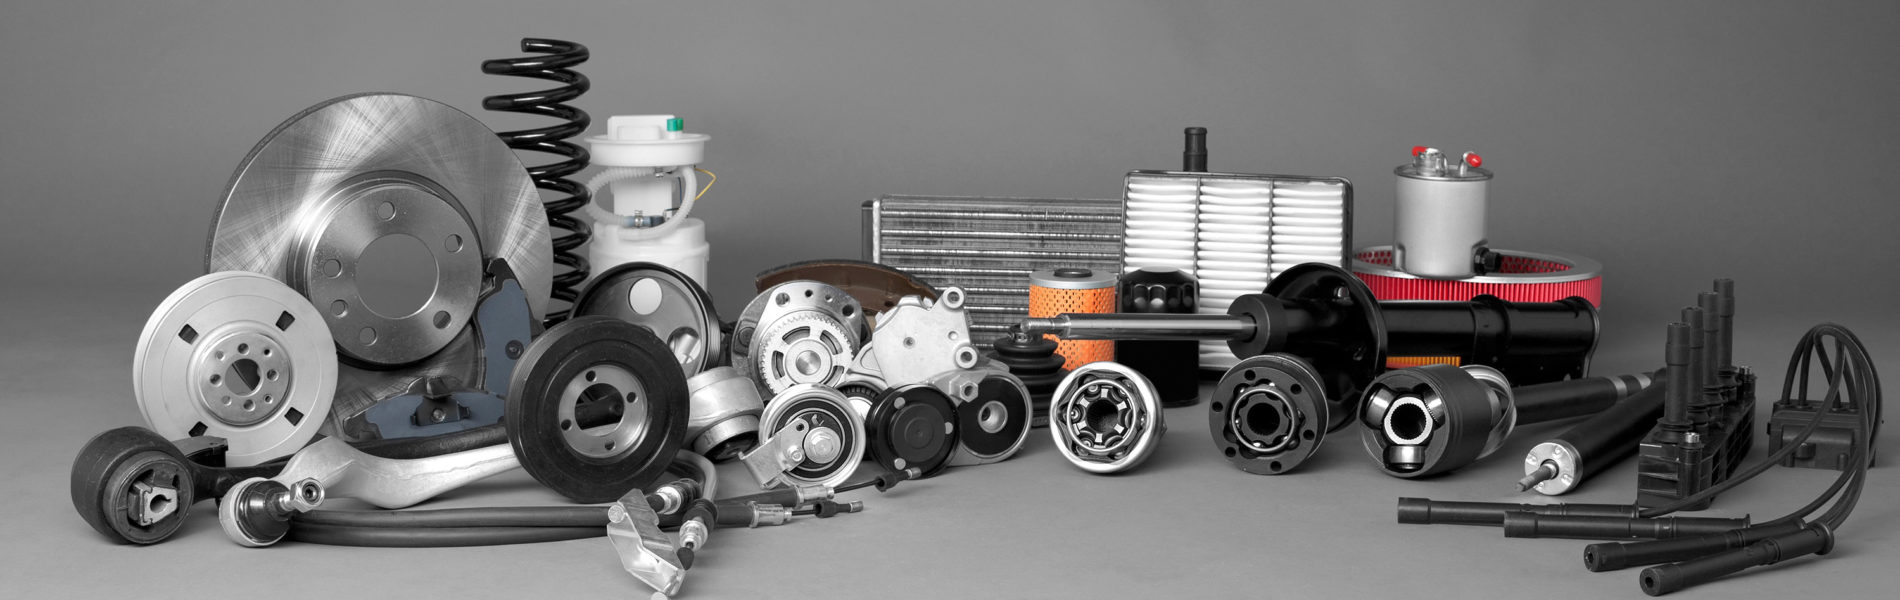 Rancho foreign car parts foreign and import auto parts for Rancho motors used cars